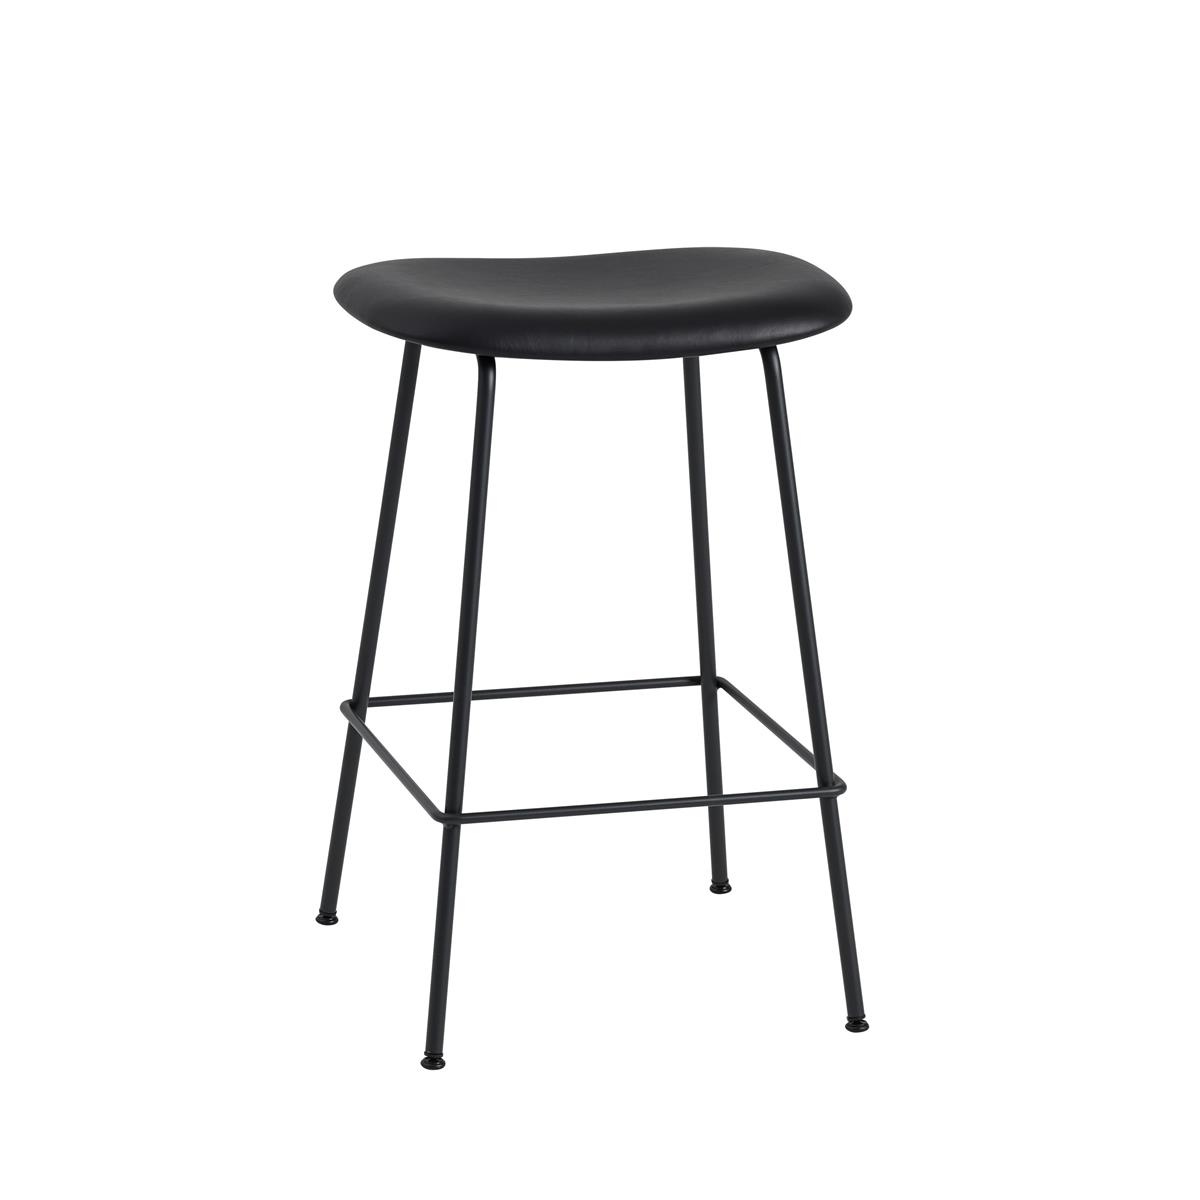 Fiber Bar Stool / Tube Base H65 - Black Silk Leather & Black